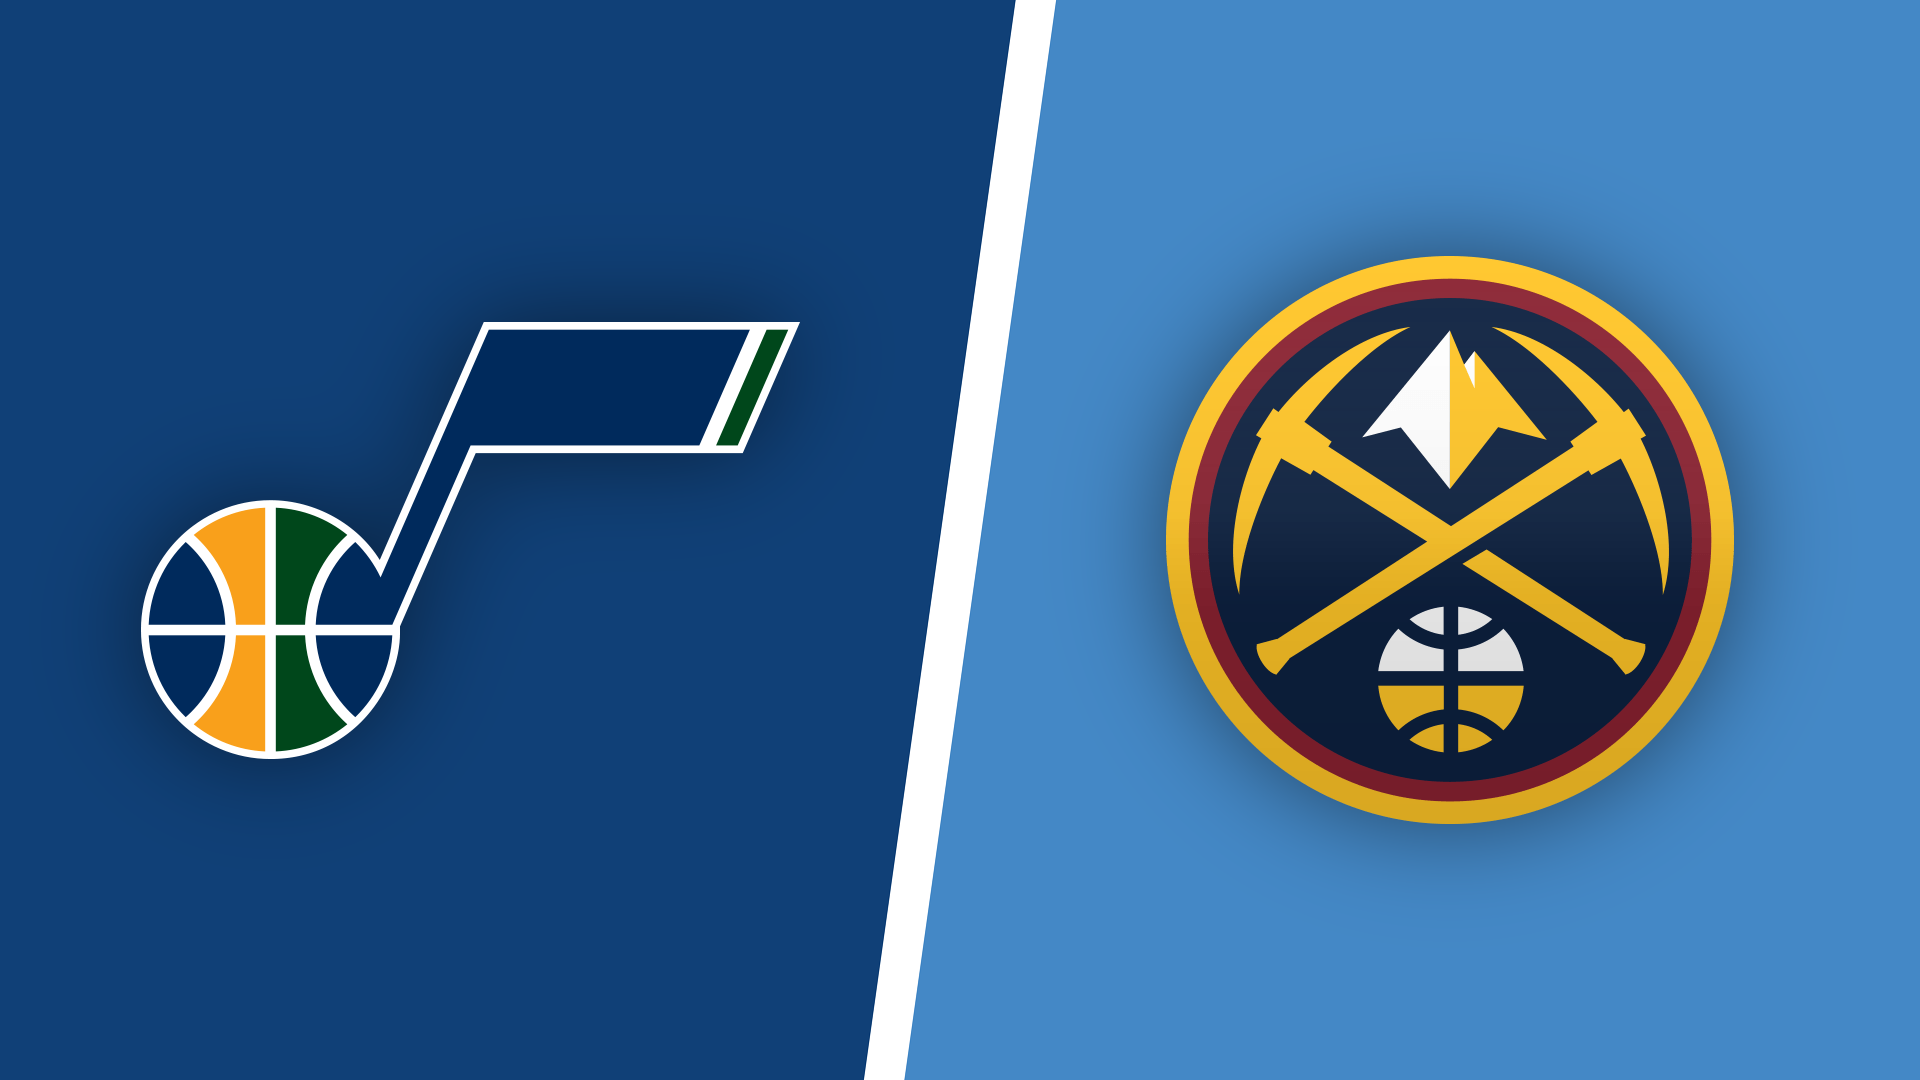 Utah Jazz Vs Denver Nuggets – NBA Game Day Preview: 01.31.2021